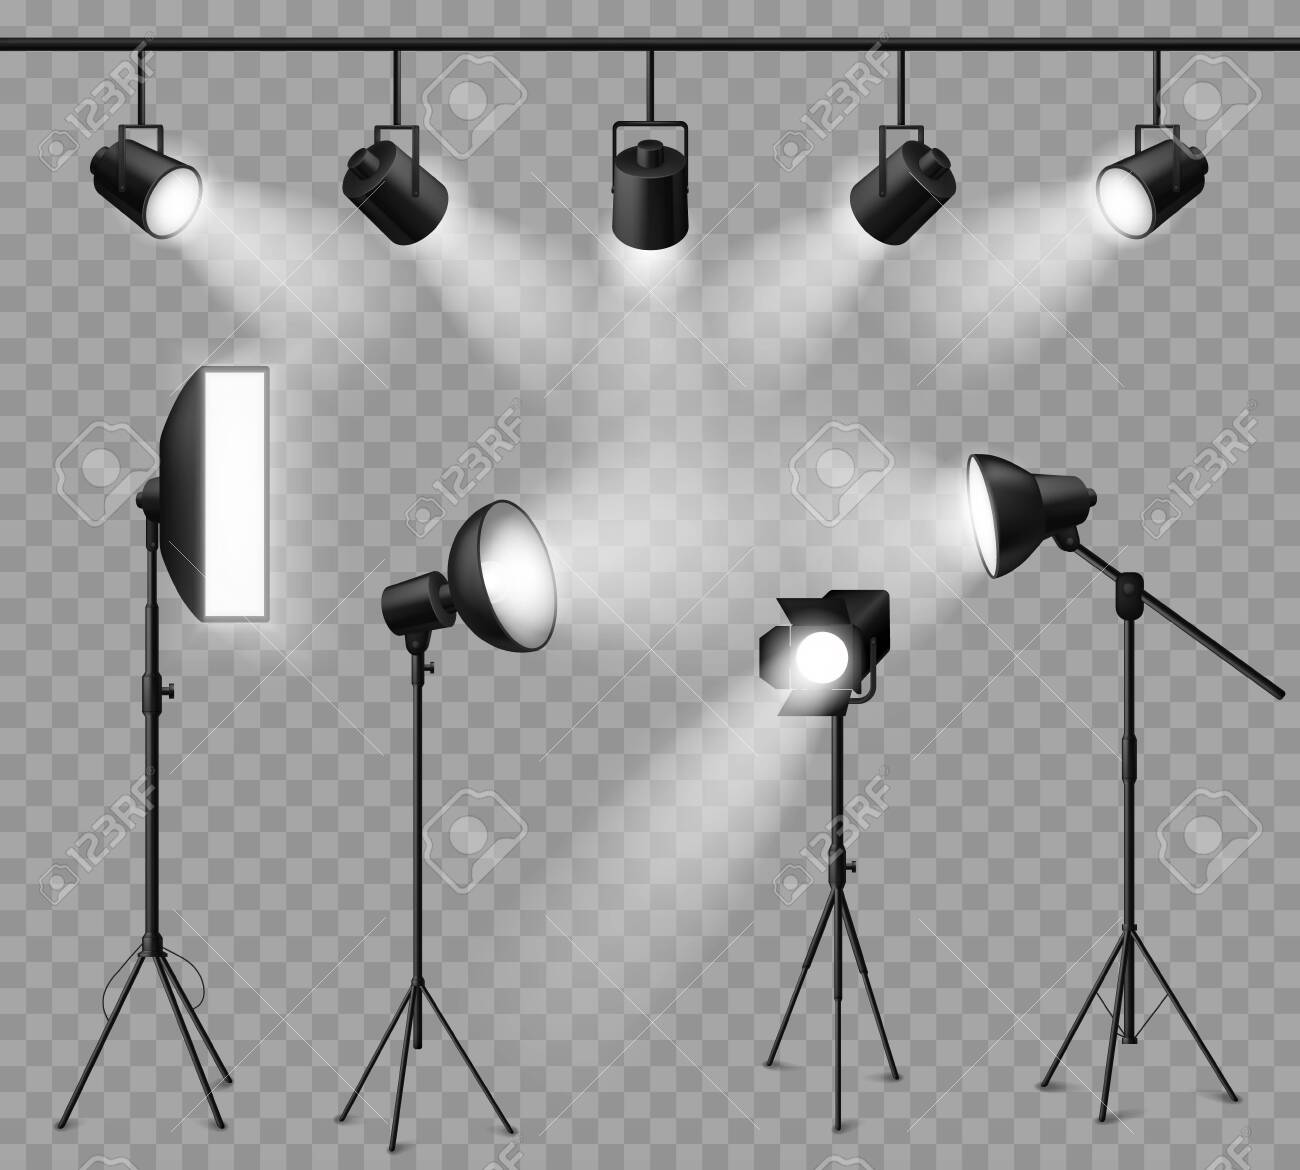 Realistic spotlight. Illuminated photo studio and stage light, floodlights and softbox set for vivid show, concert light effects. Vector projector and lamp set - 141378151